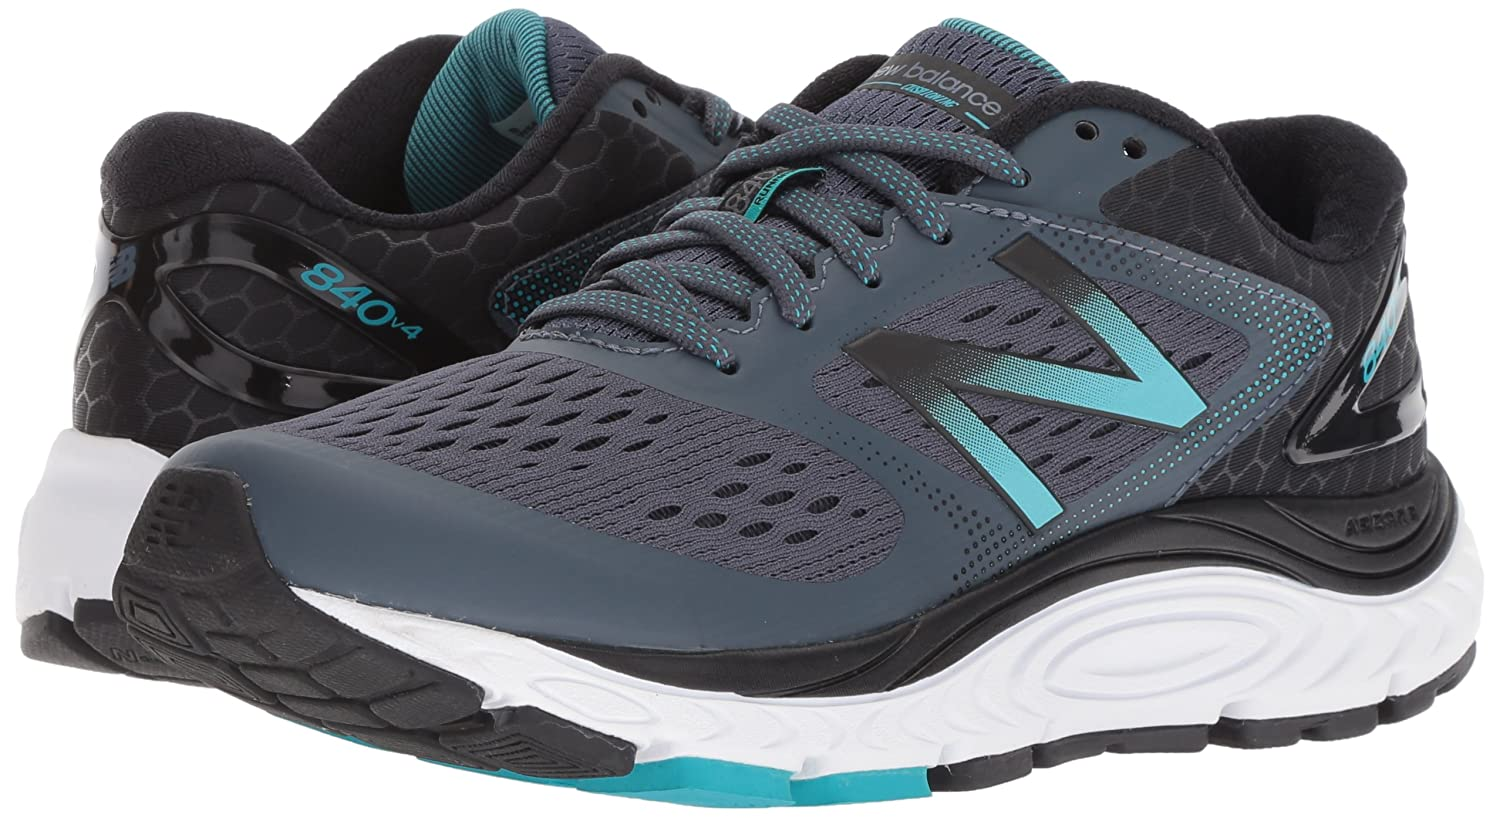 New Balance Women's 840v4 US|Dark Running Shoe B01MTYYYCF 10 2E US|Dark 840v4 Grey 70ac3d